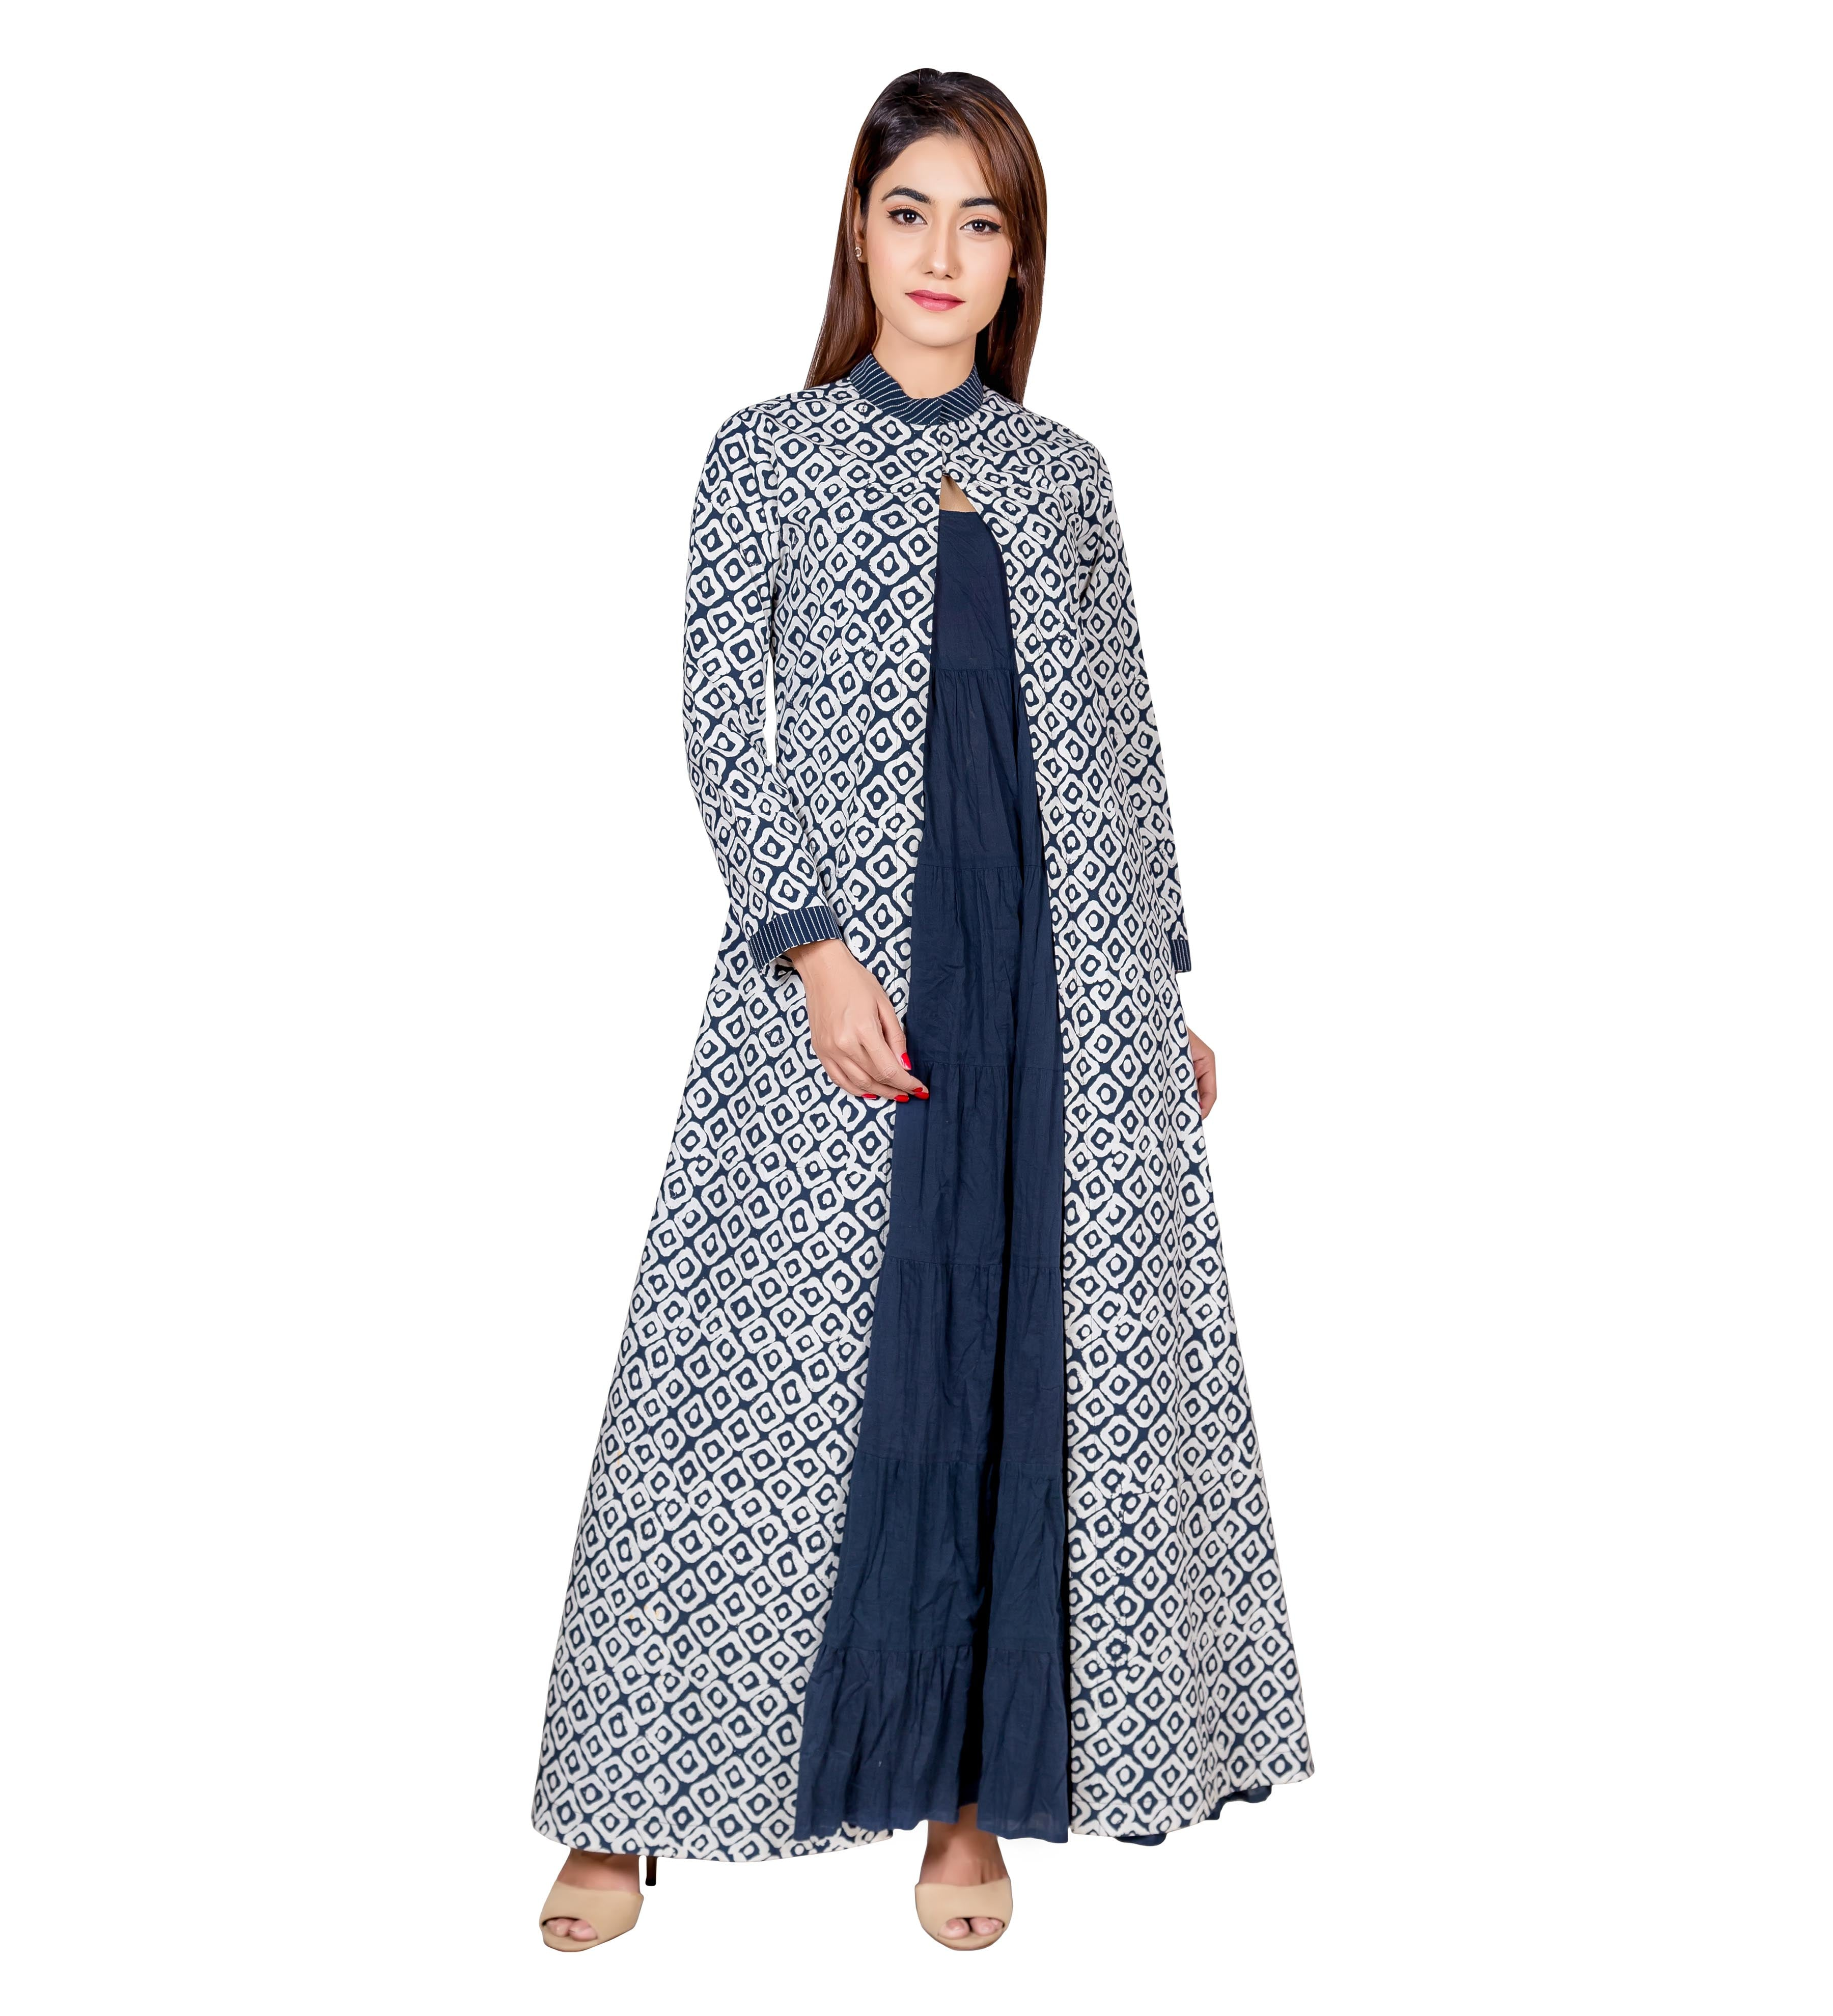 934df69aca4 Blue   White Hand Block Printed Indo Western Long Jacket Dress ...